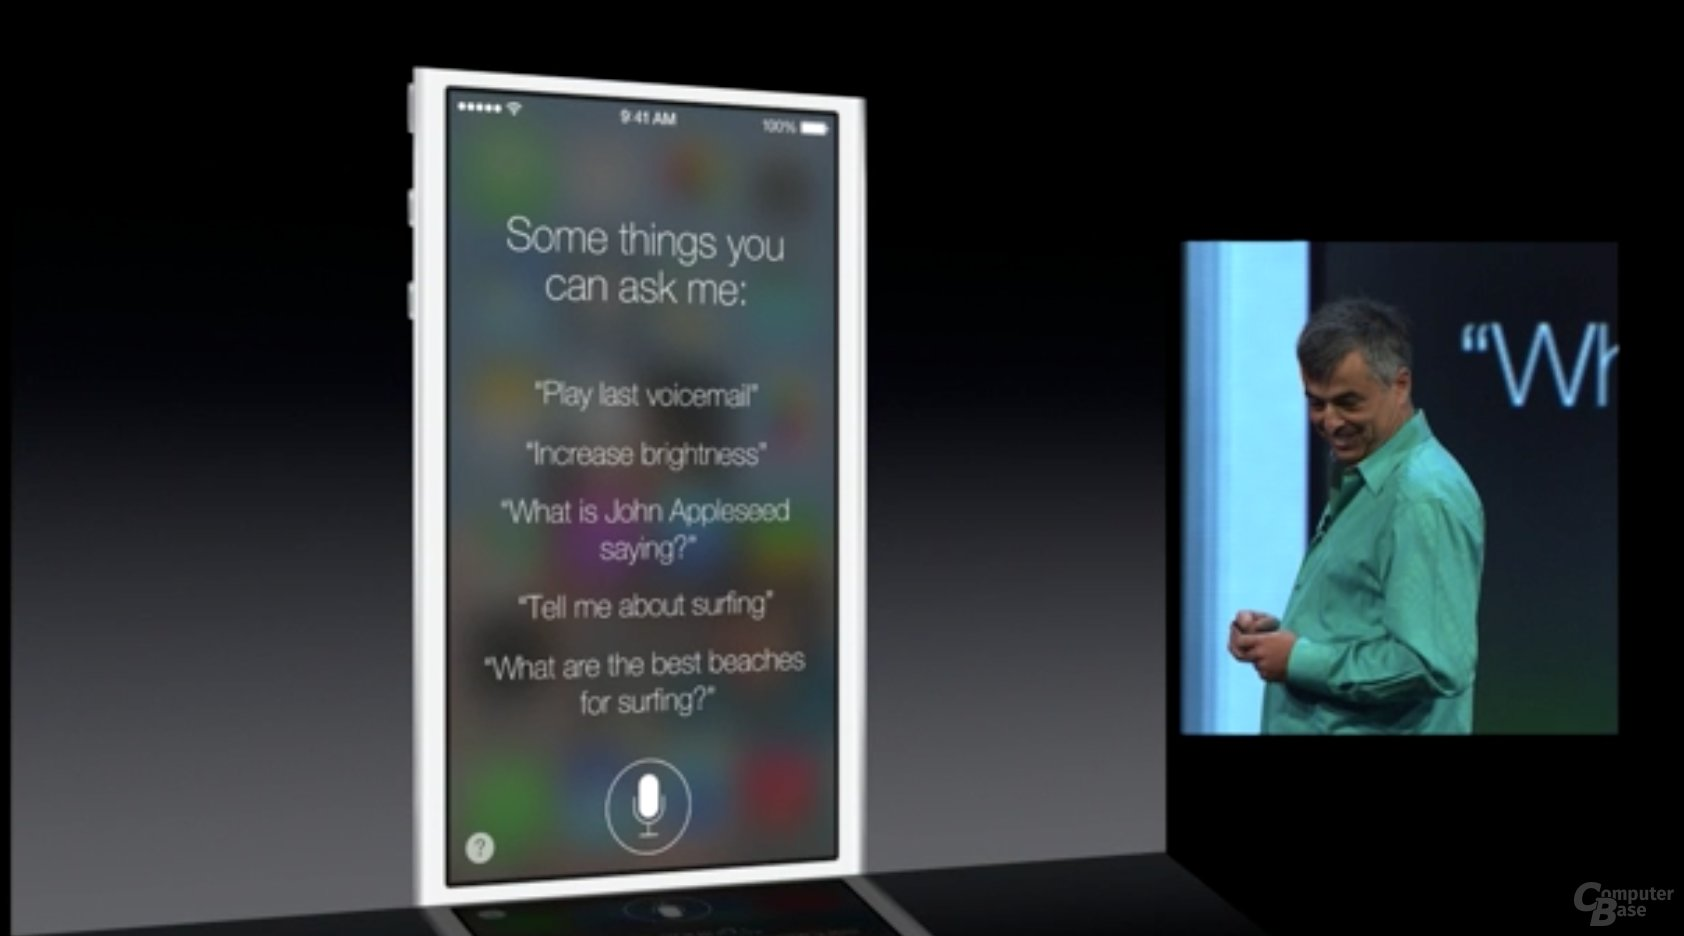 Apple iOS 7 - Siri